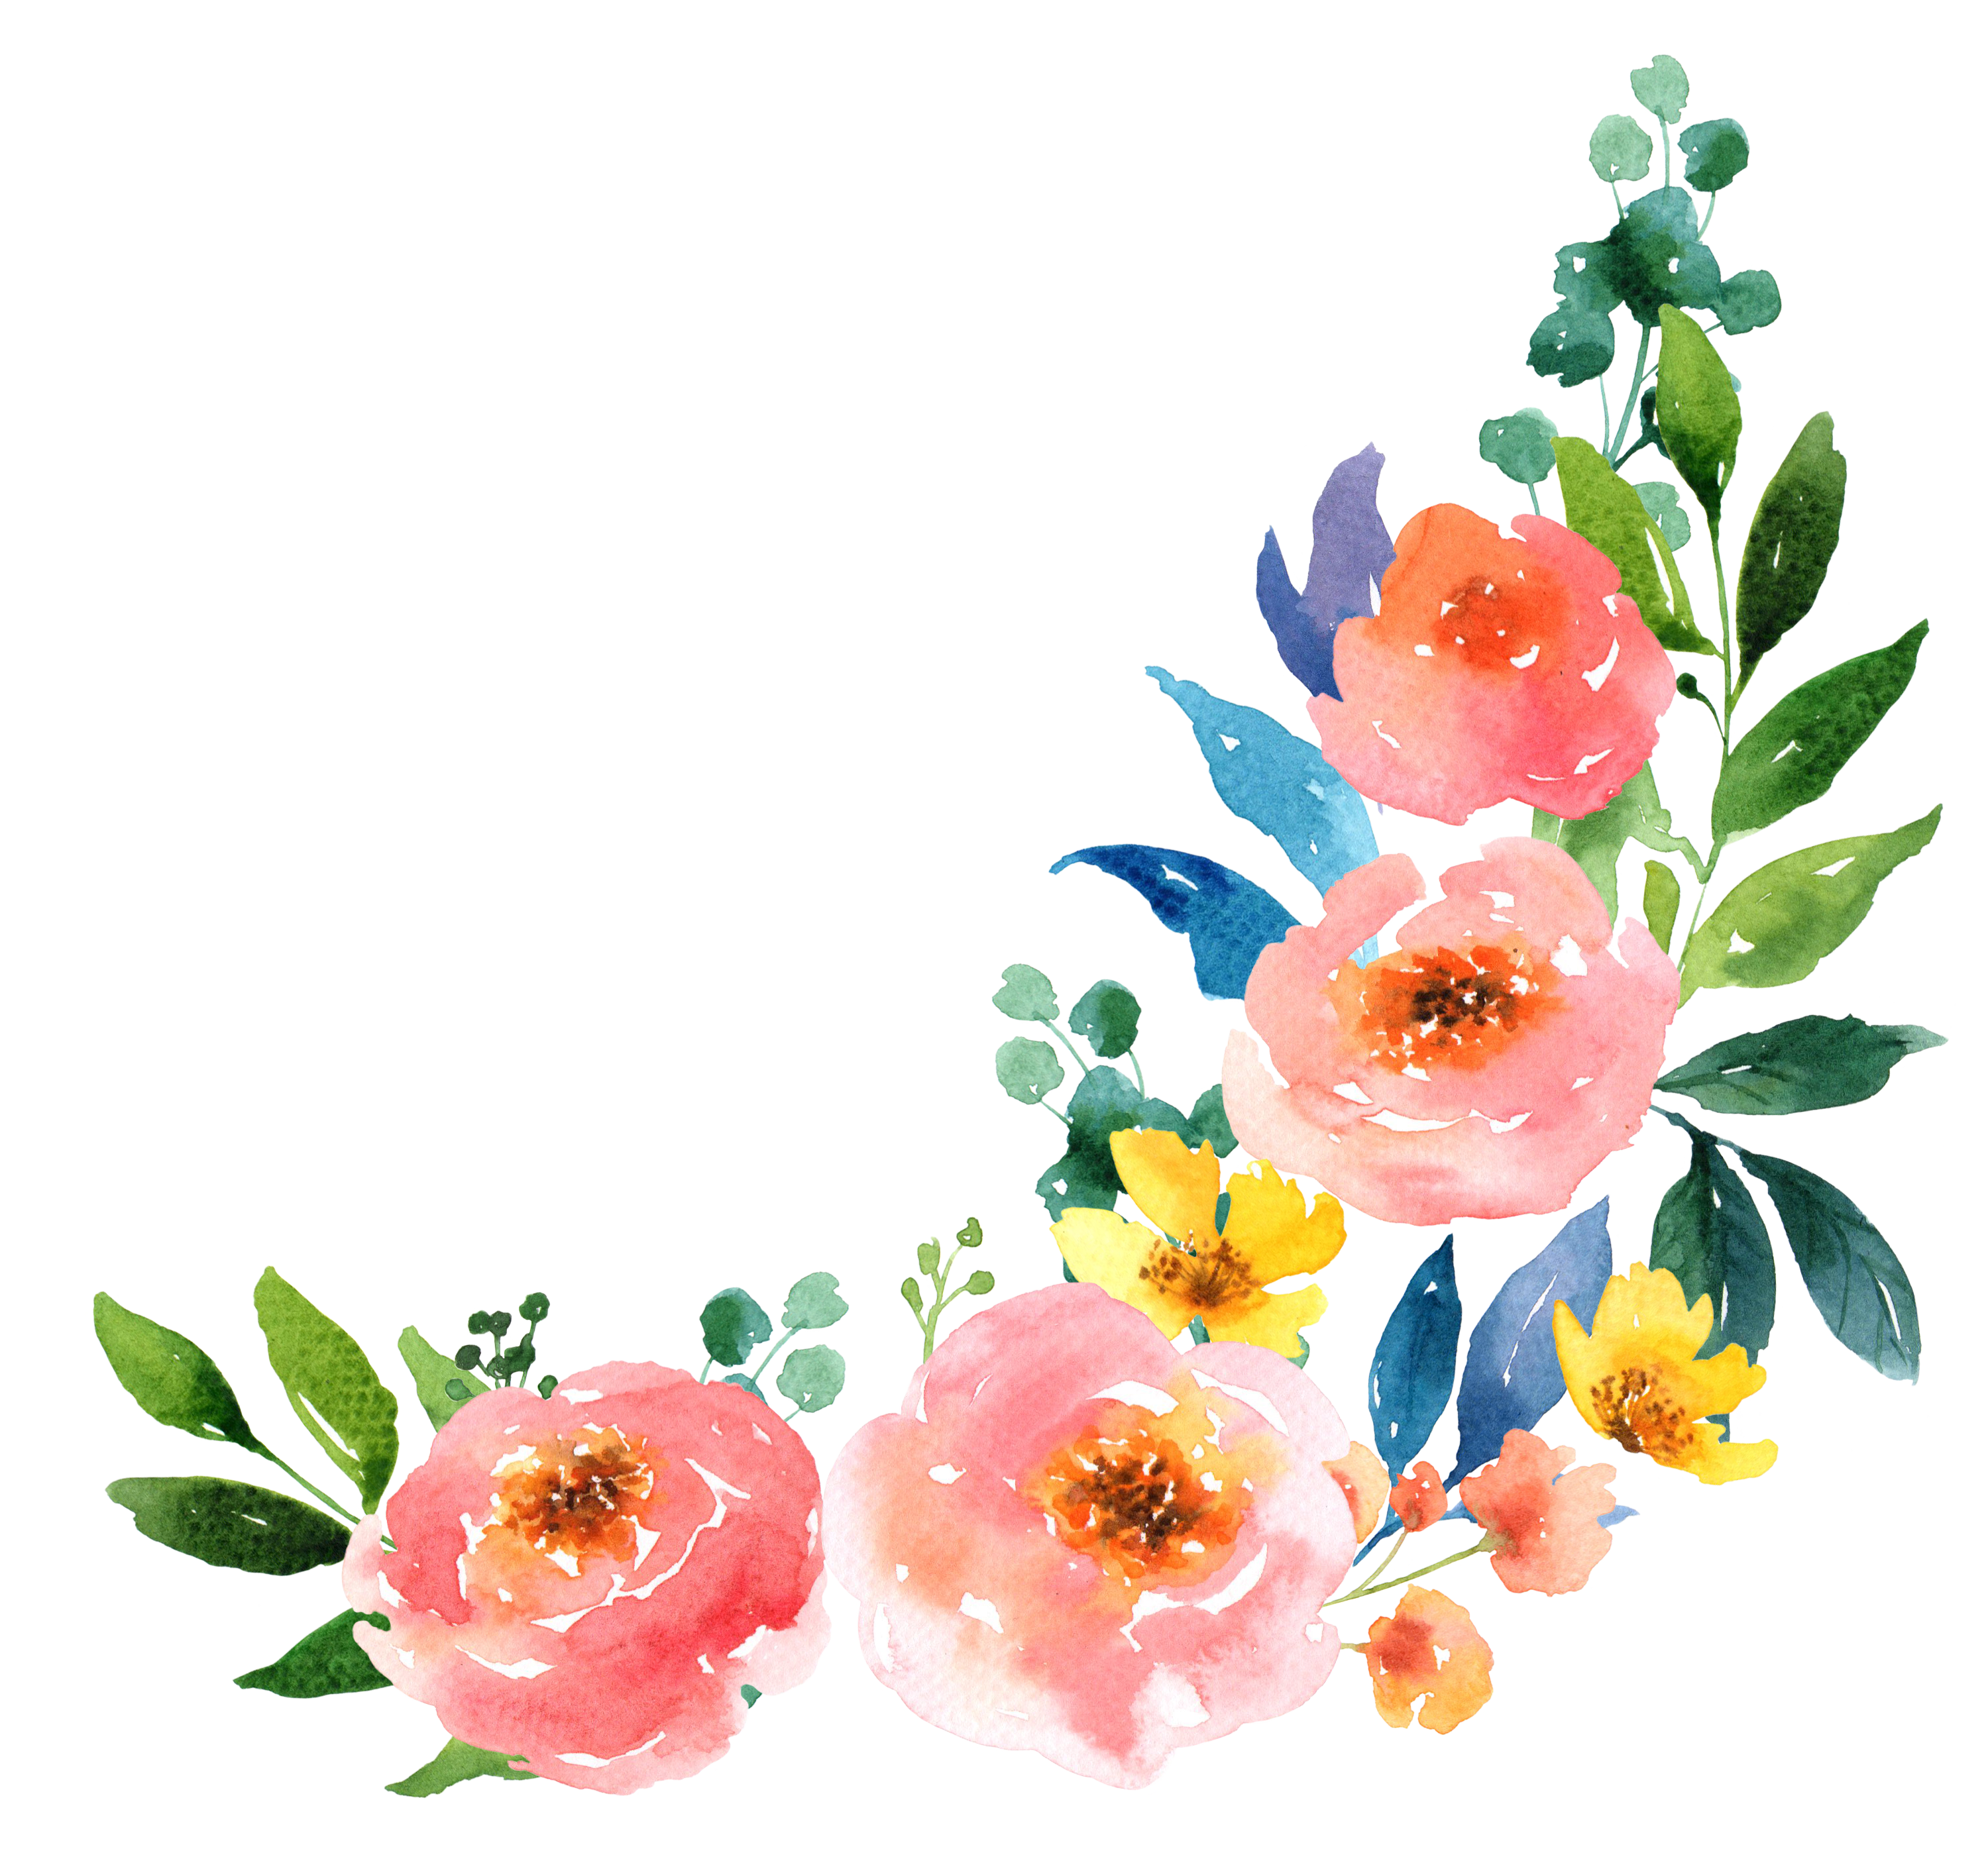 Watercolor flowers png free. Paper watercolour painting transprent